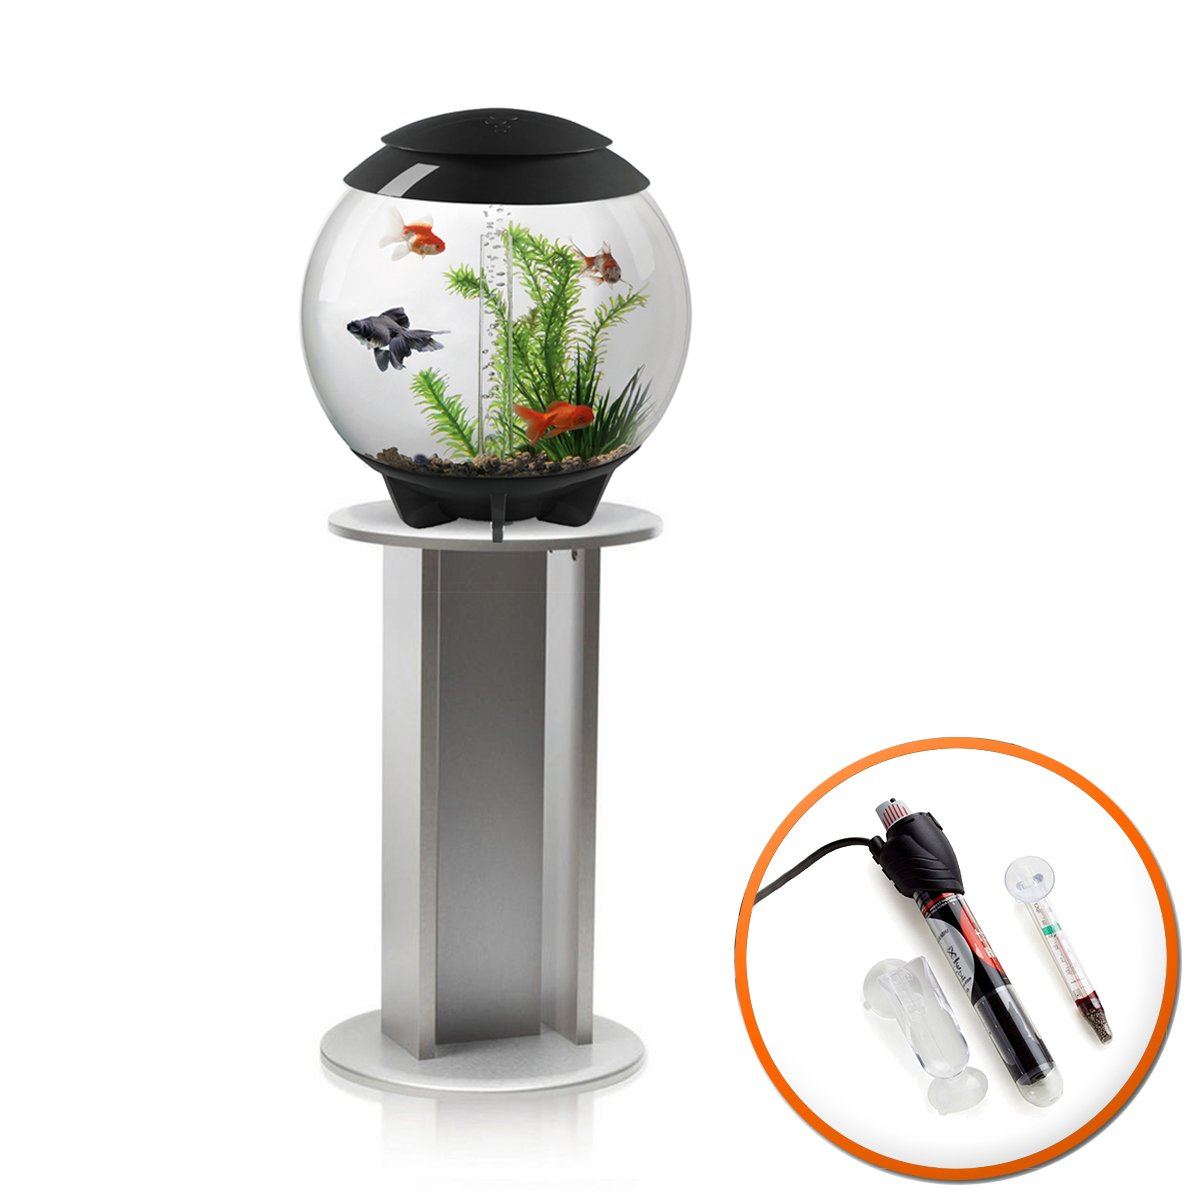 BiOrb Halo 30L Aquarium in Grey with Moonlight LED Lighting, Heater Pack and Silver Stand